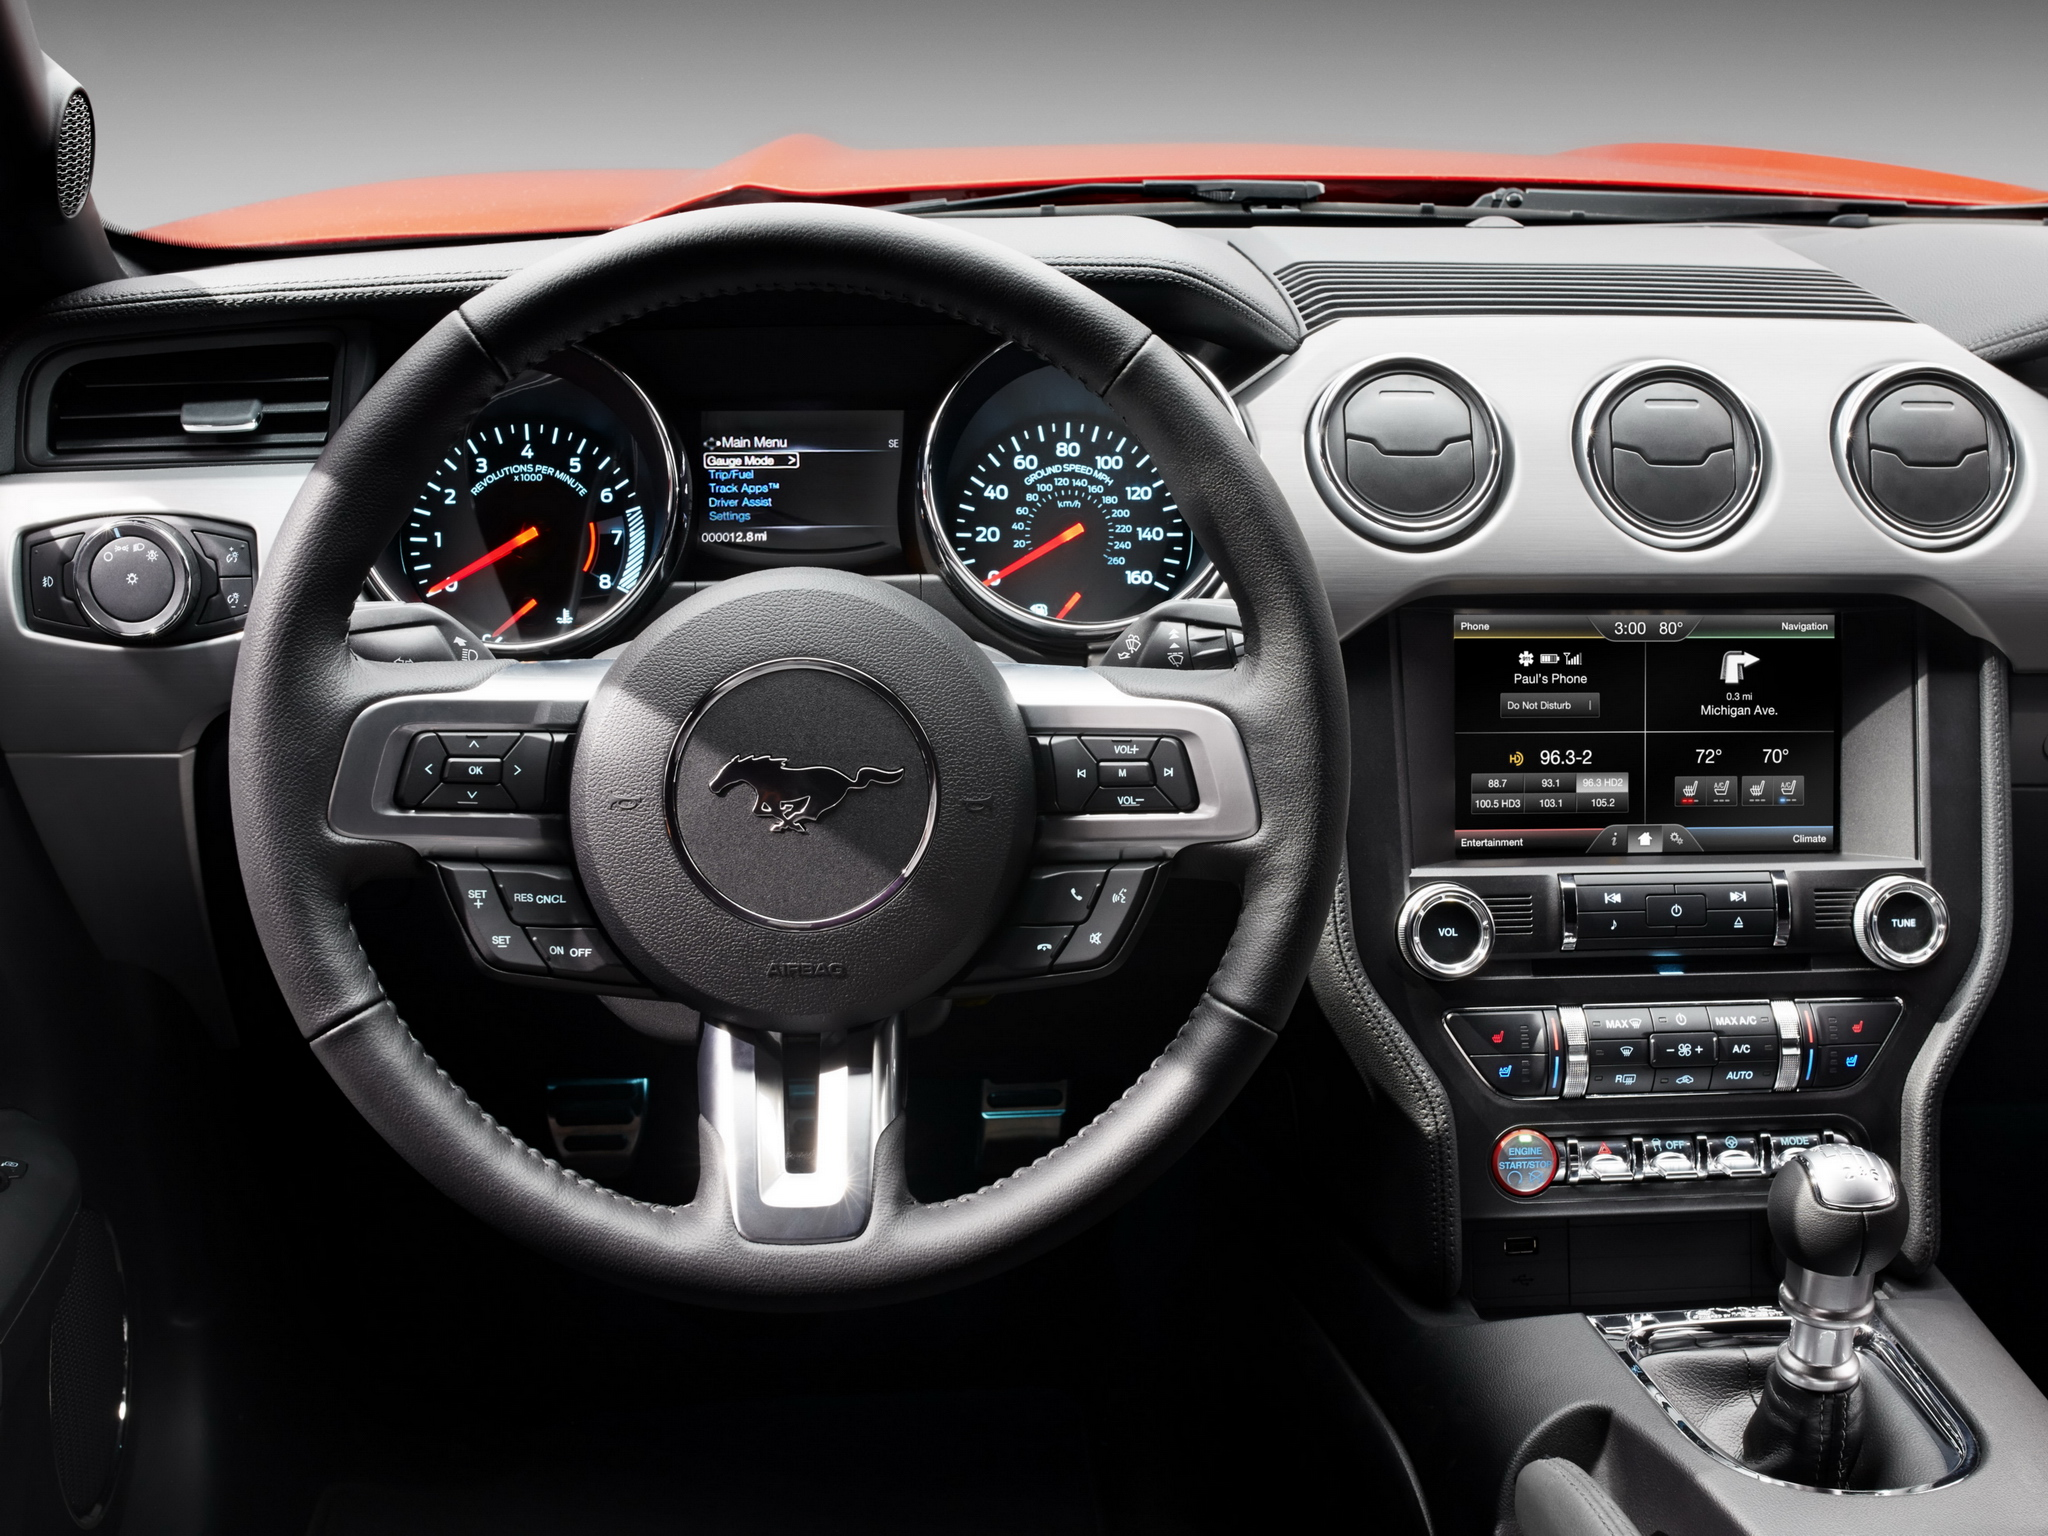 2014 ford mustang g t muscle interior c wallpaper 2048x1536 187975 wallpaperup